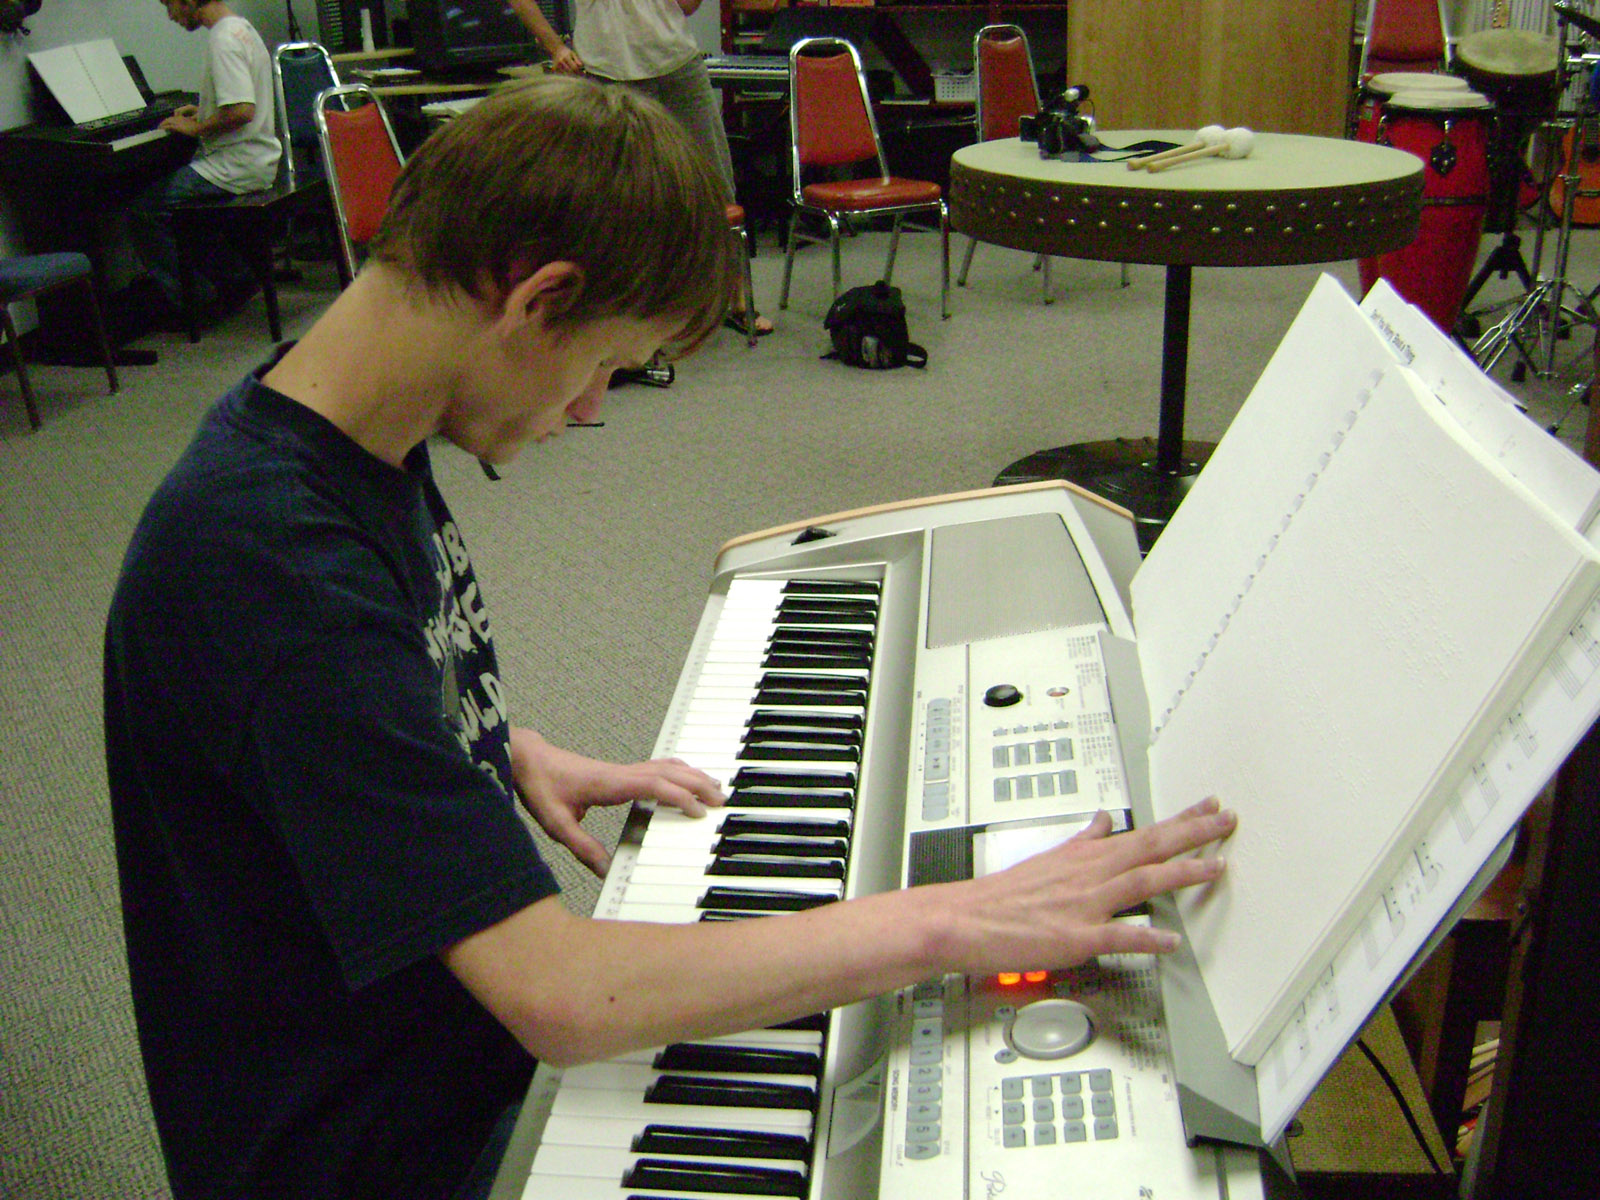 playing the piano using braille music notation